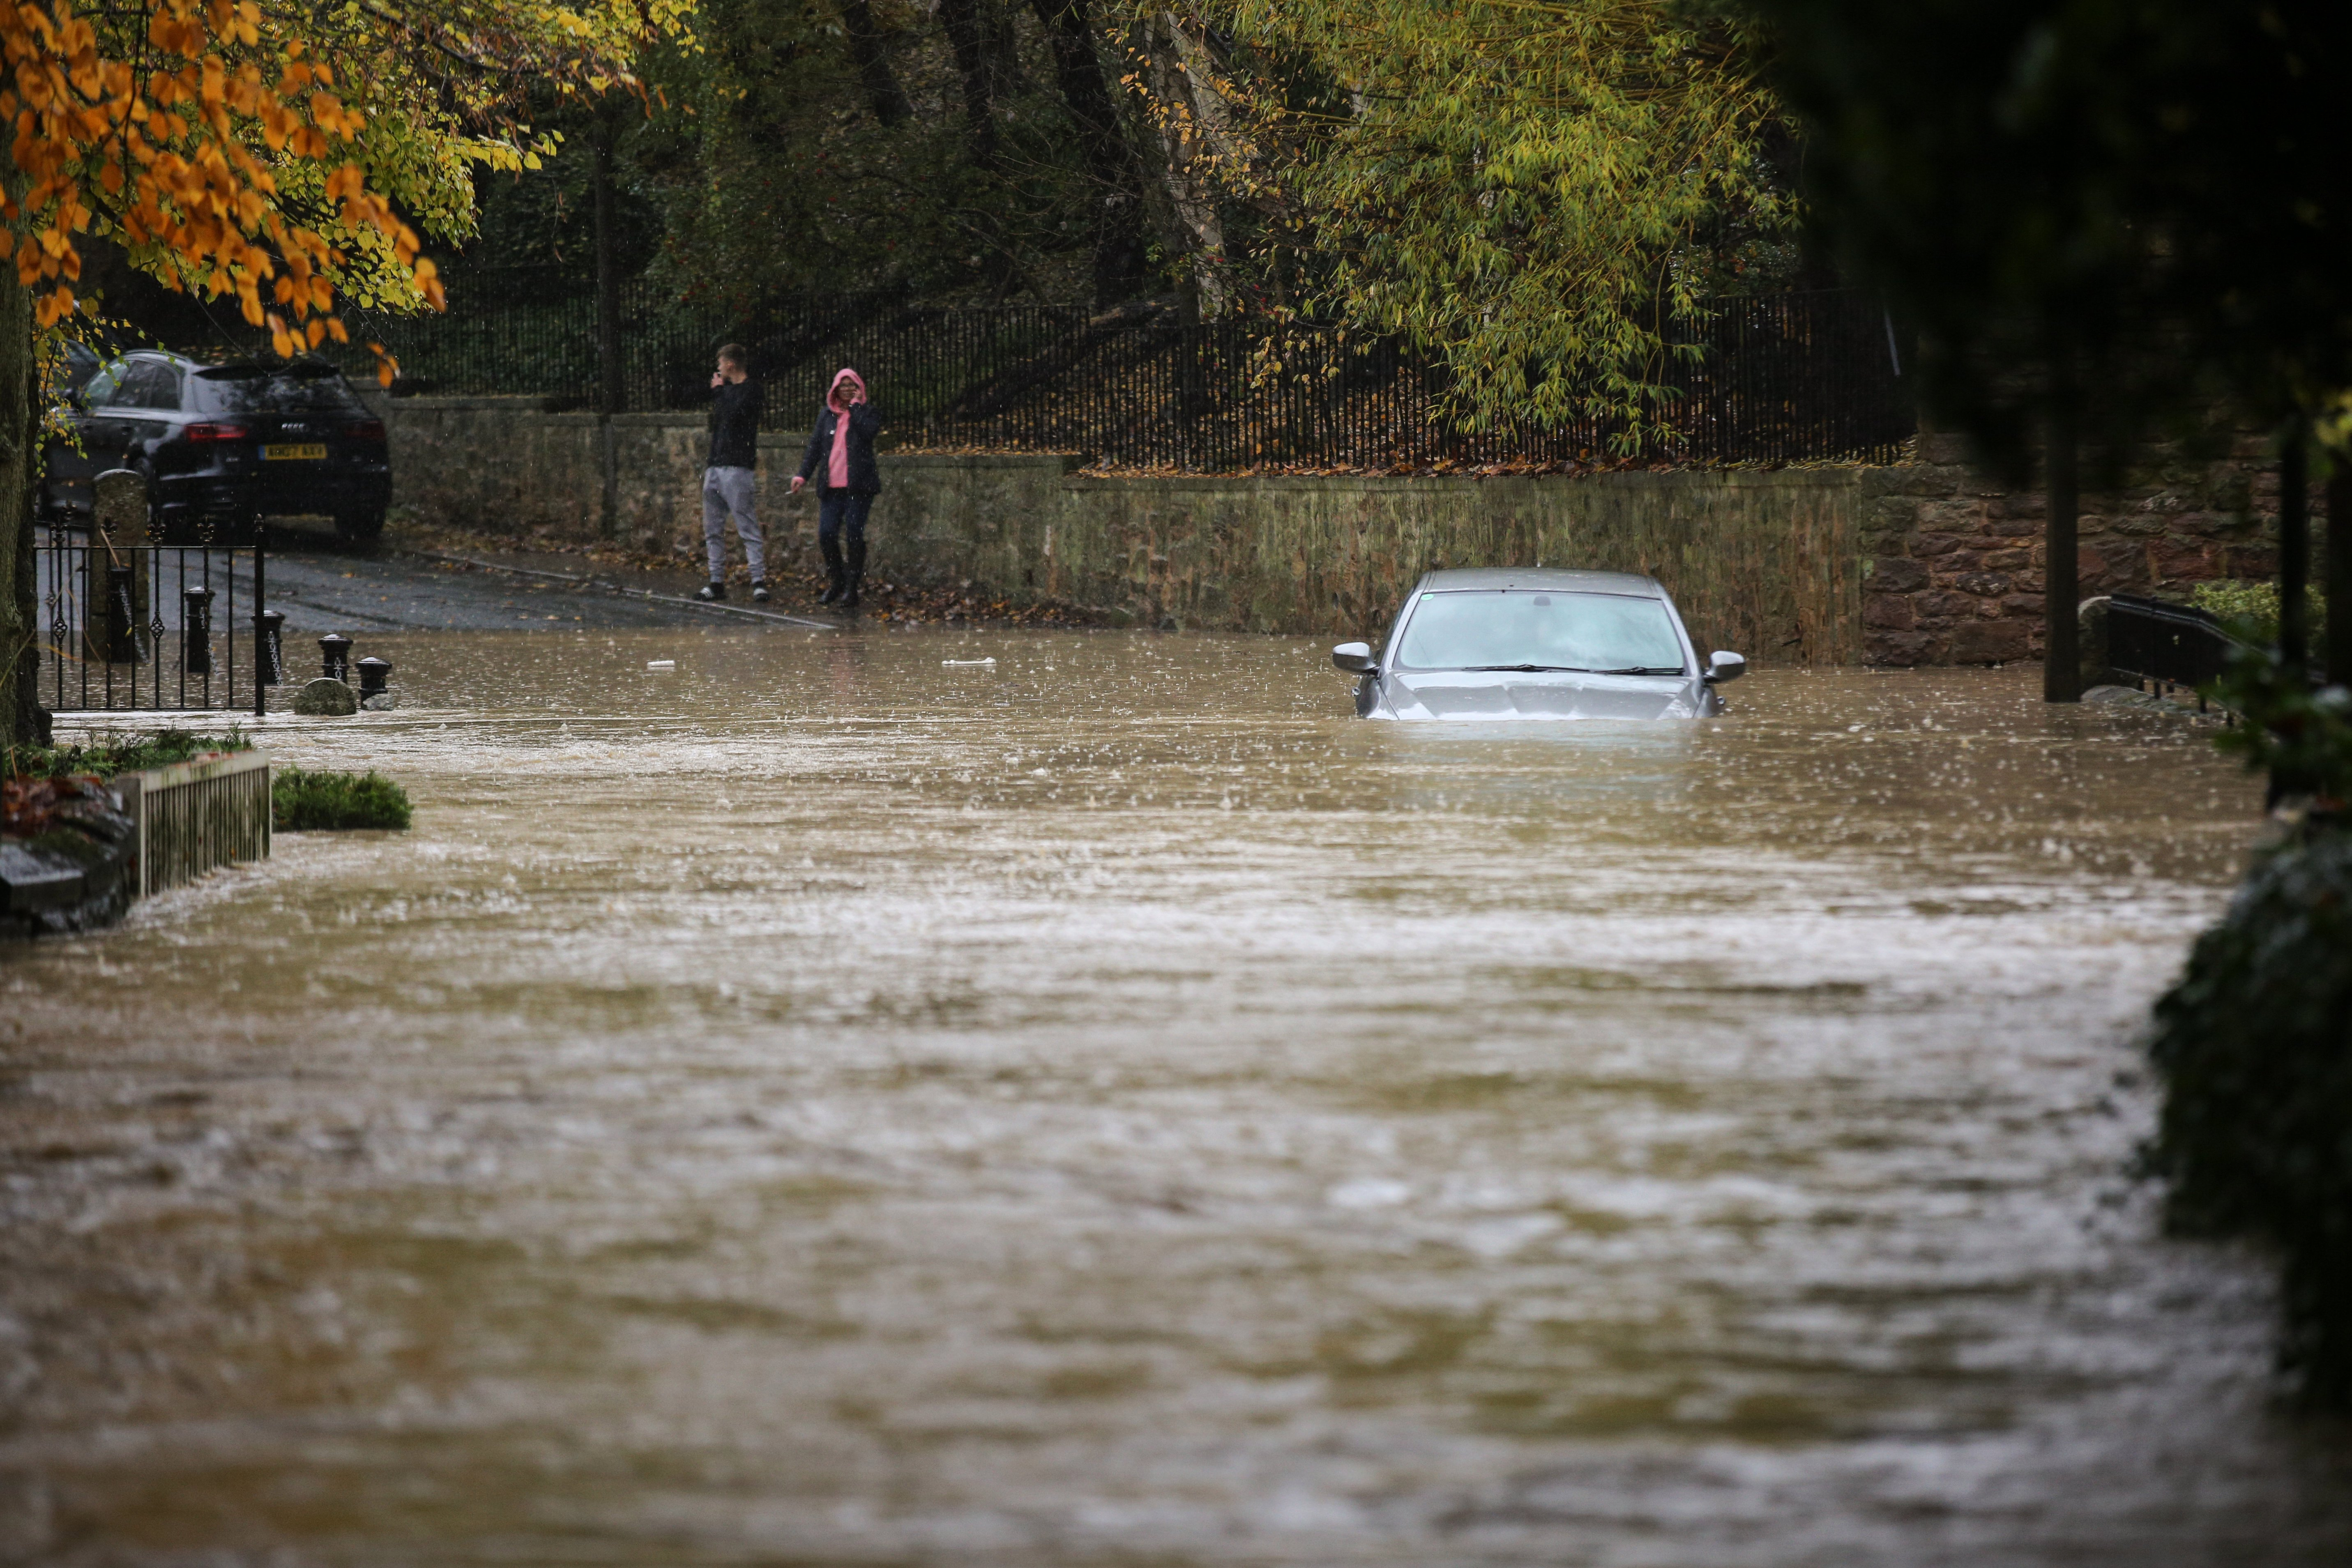 A car is stuck in the flooding in the village of Whiston near Sheffield